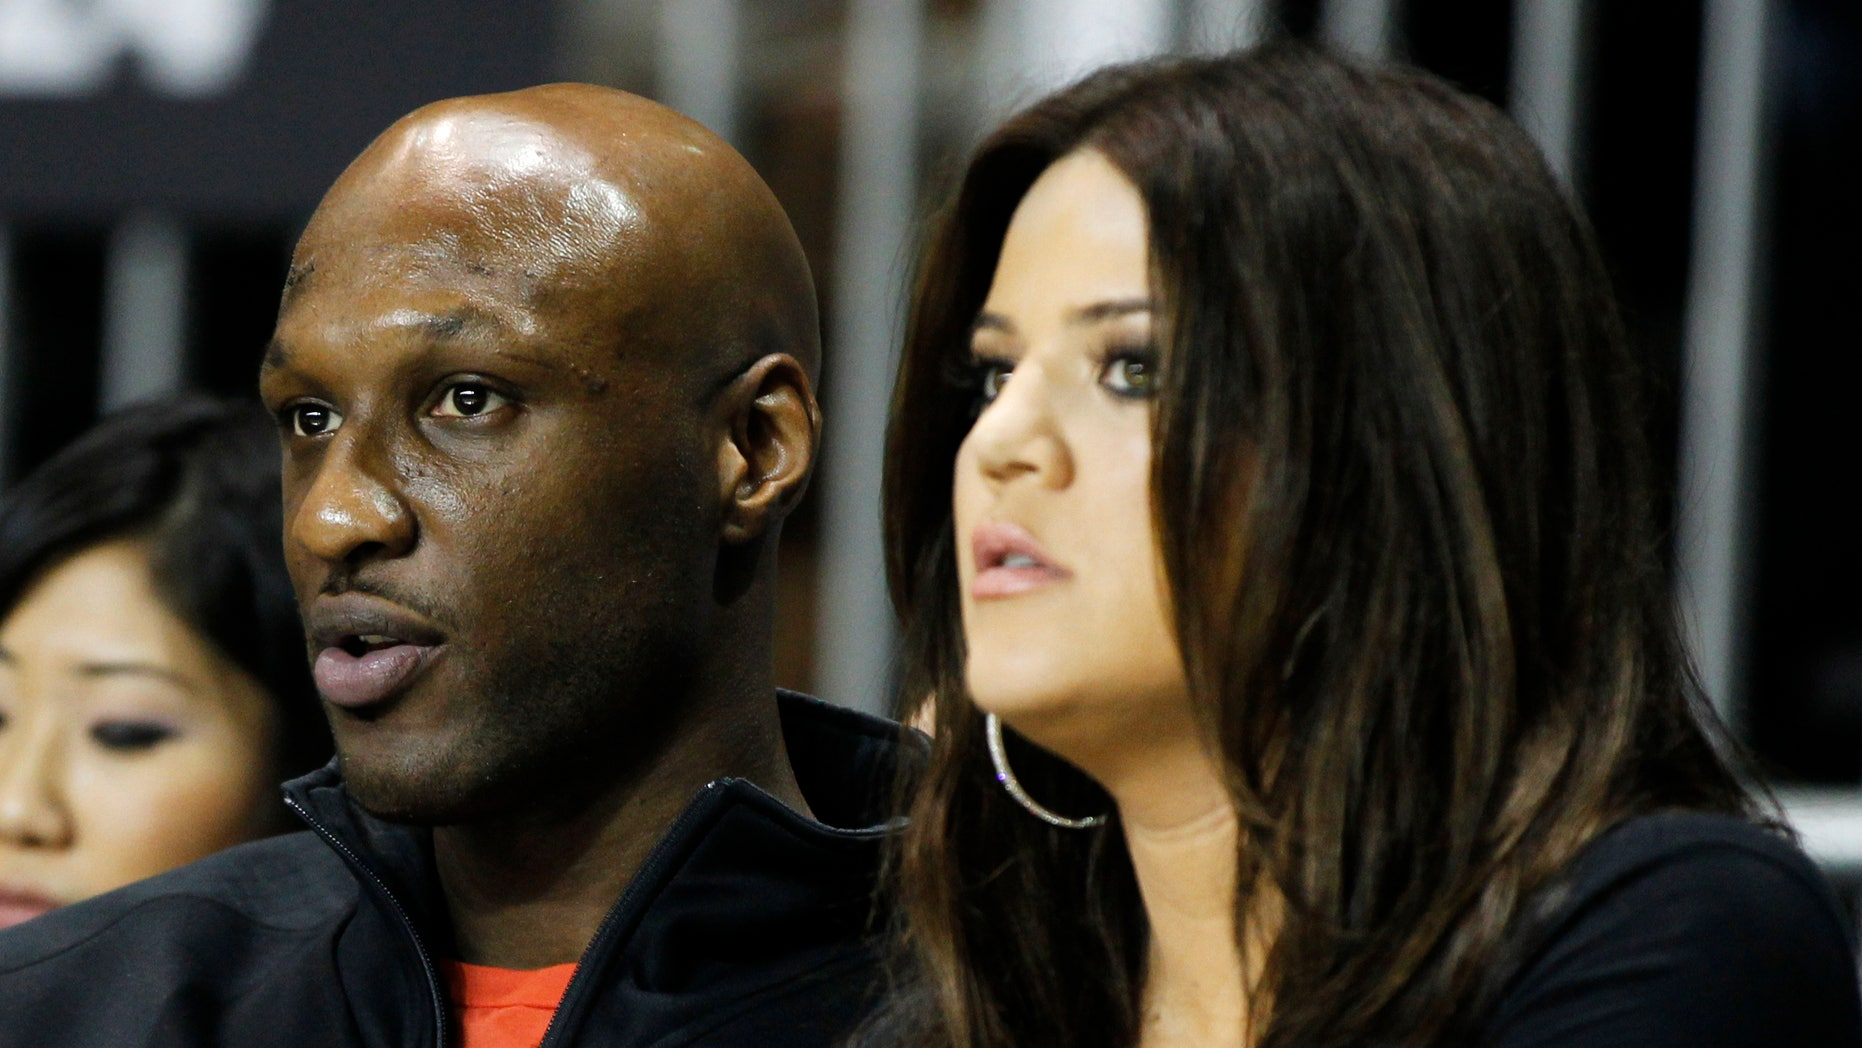 Los Angeles Lakers' Lamar Odom (L) and his wife television personality Khloe Kardashian sit courtside as they attend the 2011 BBVA All-Star Celebrity basketball game as a part of the NBA All-Star basketball weekend in Los Angeles, February 18, 2011. REUTERS/Danny Moloshok (UNITED STATES - Tags: SPORT BASKETBALL ENTERTAINMENT) - RTR2ISS6